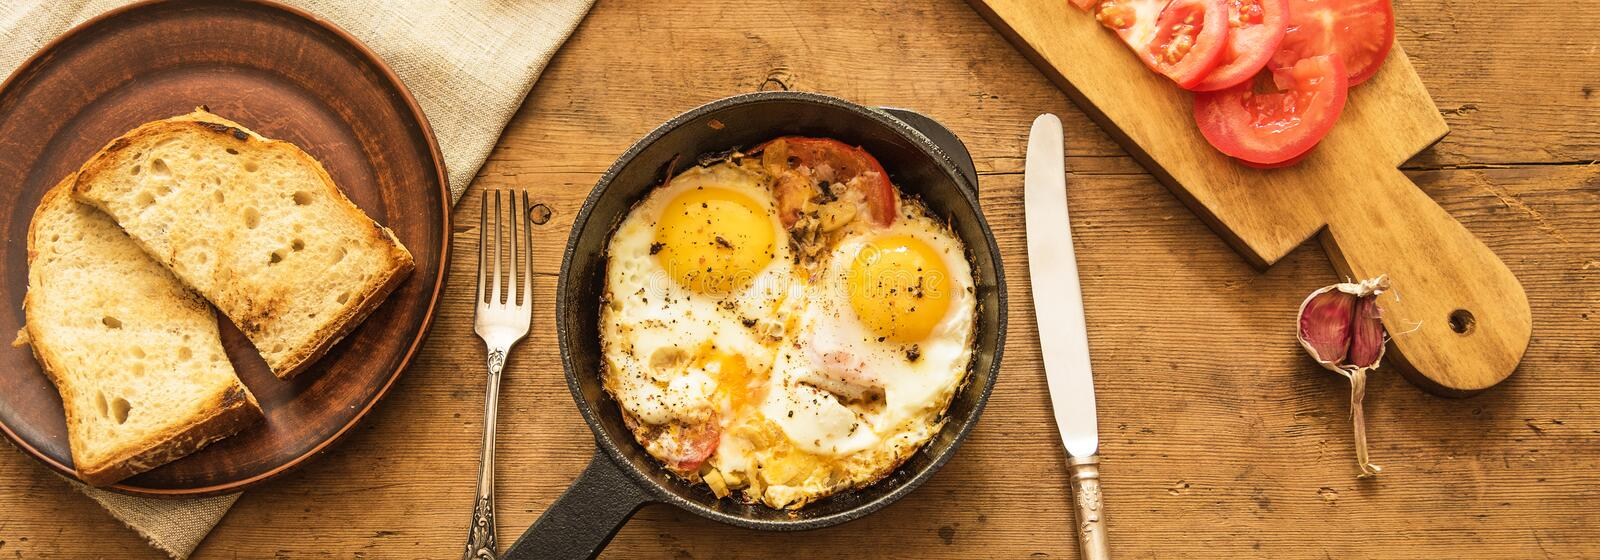 Fried eggs in a frying pan, bread and tomatoes with garlic on a rustic wooden background, top view. The concept of simple healthy eating, panoramic banner with a stock photos